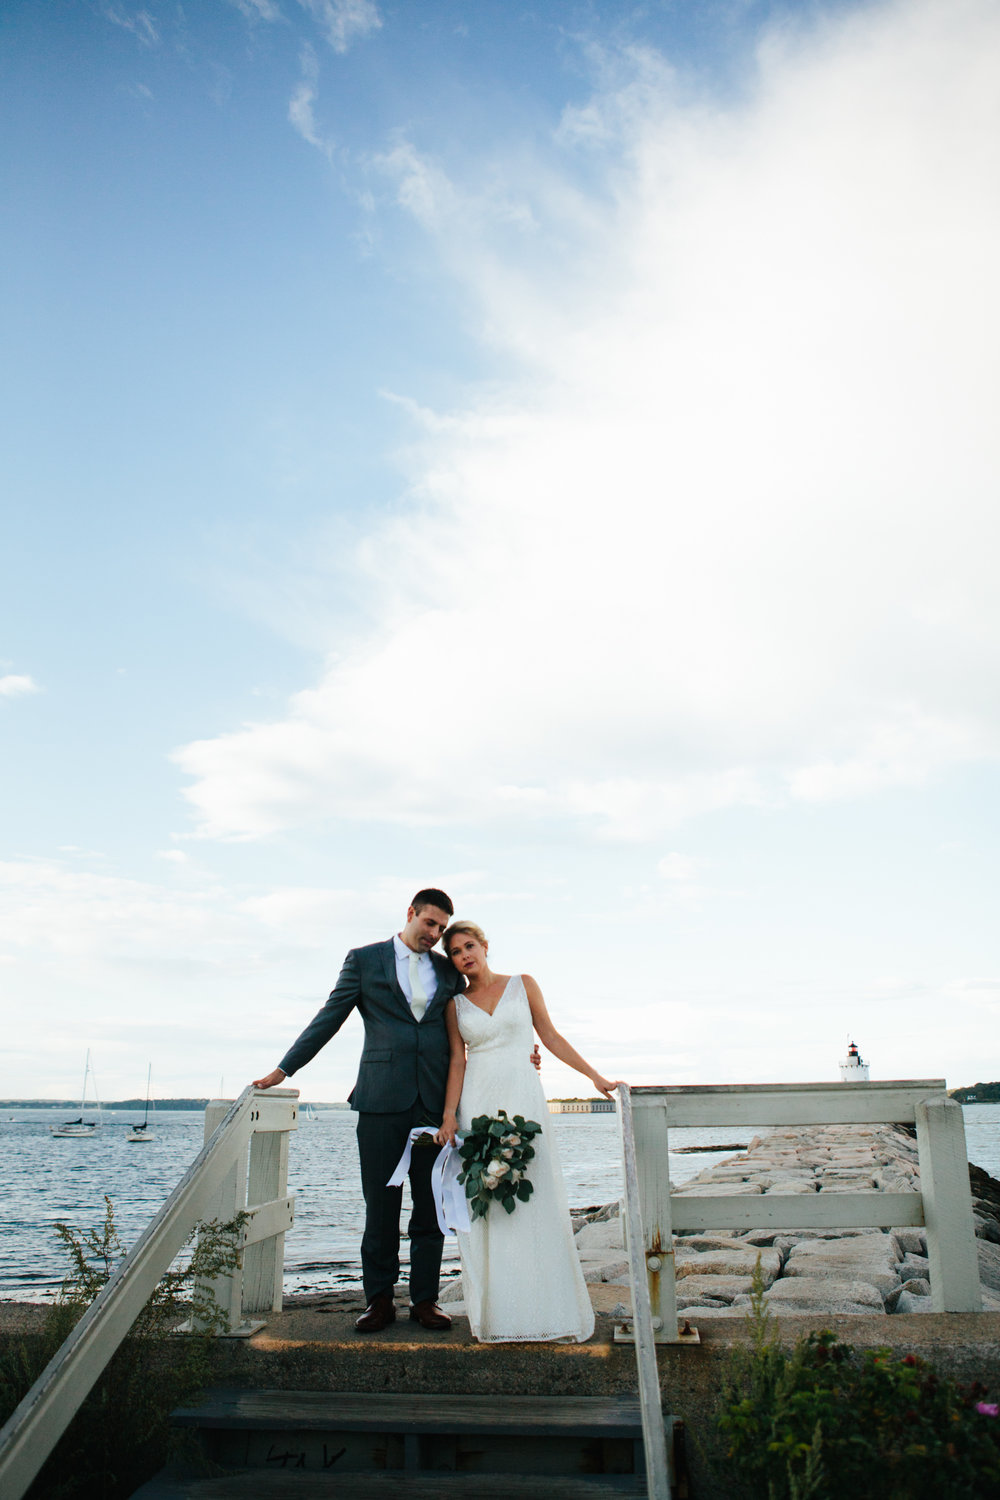 spring-point-ledge-lighthouse-wedding-south-portland-maine-2343.jpg